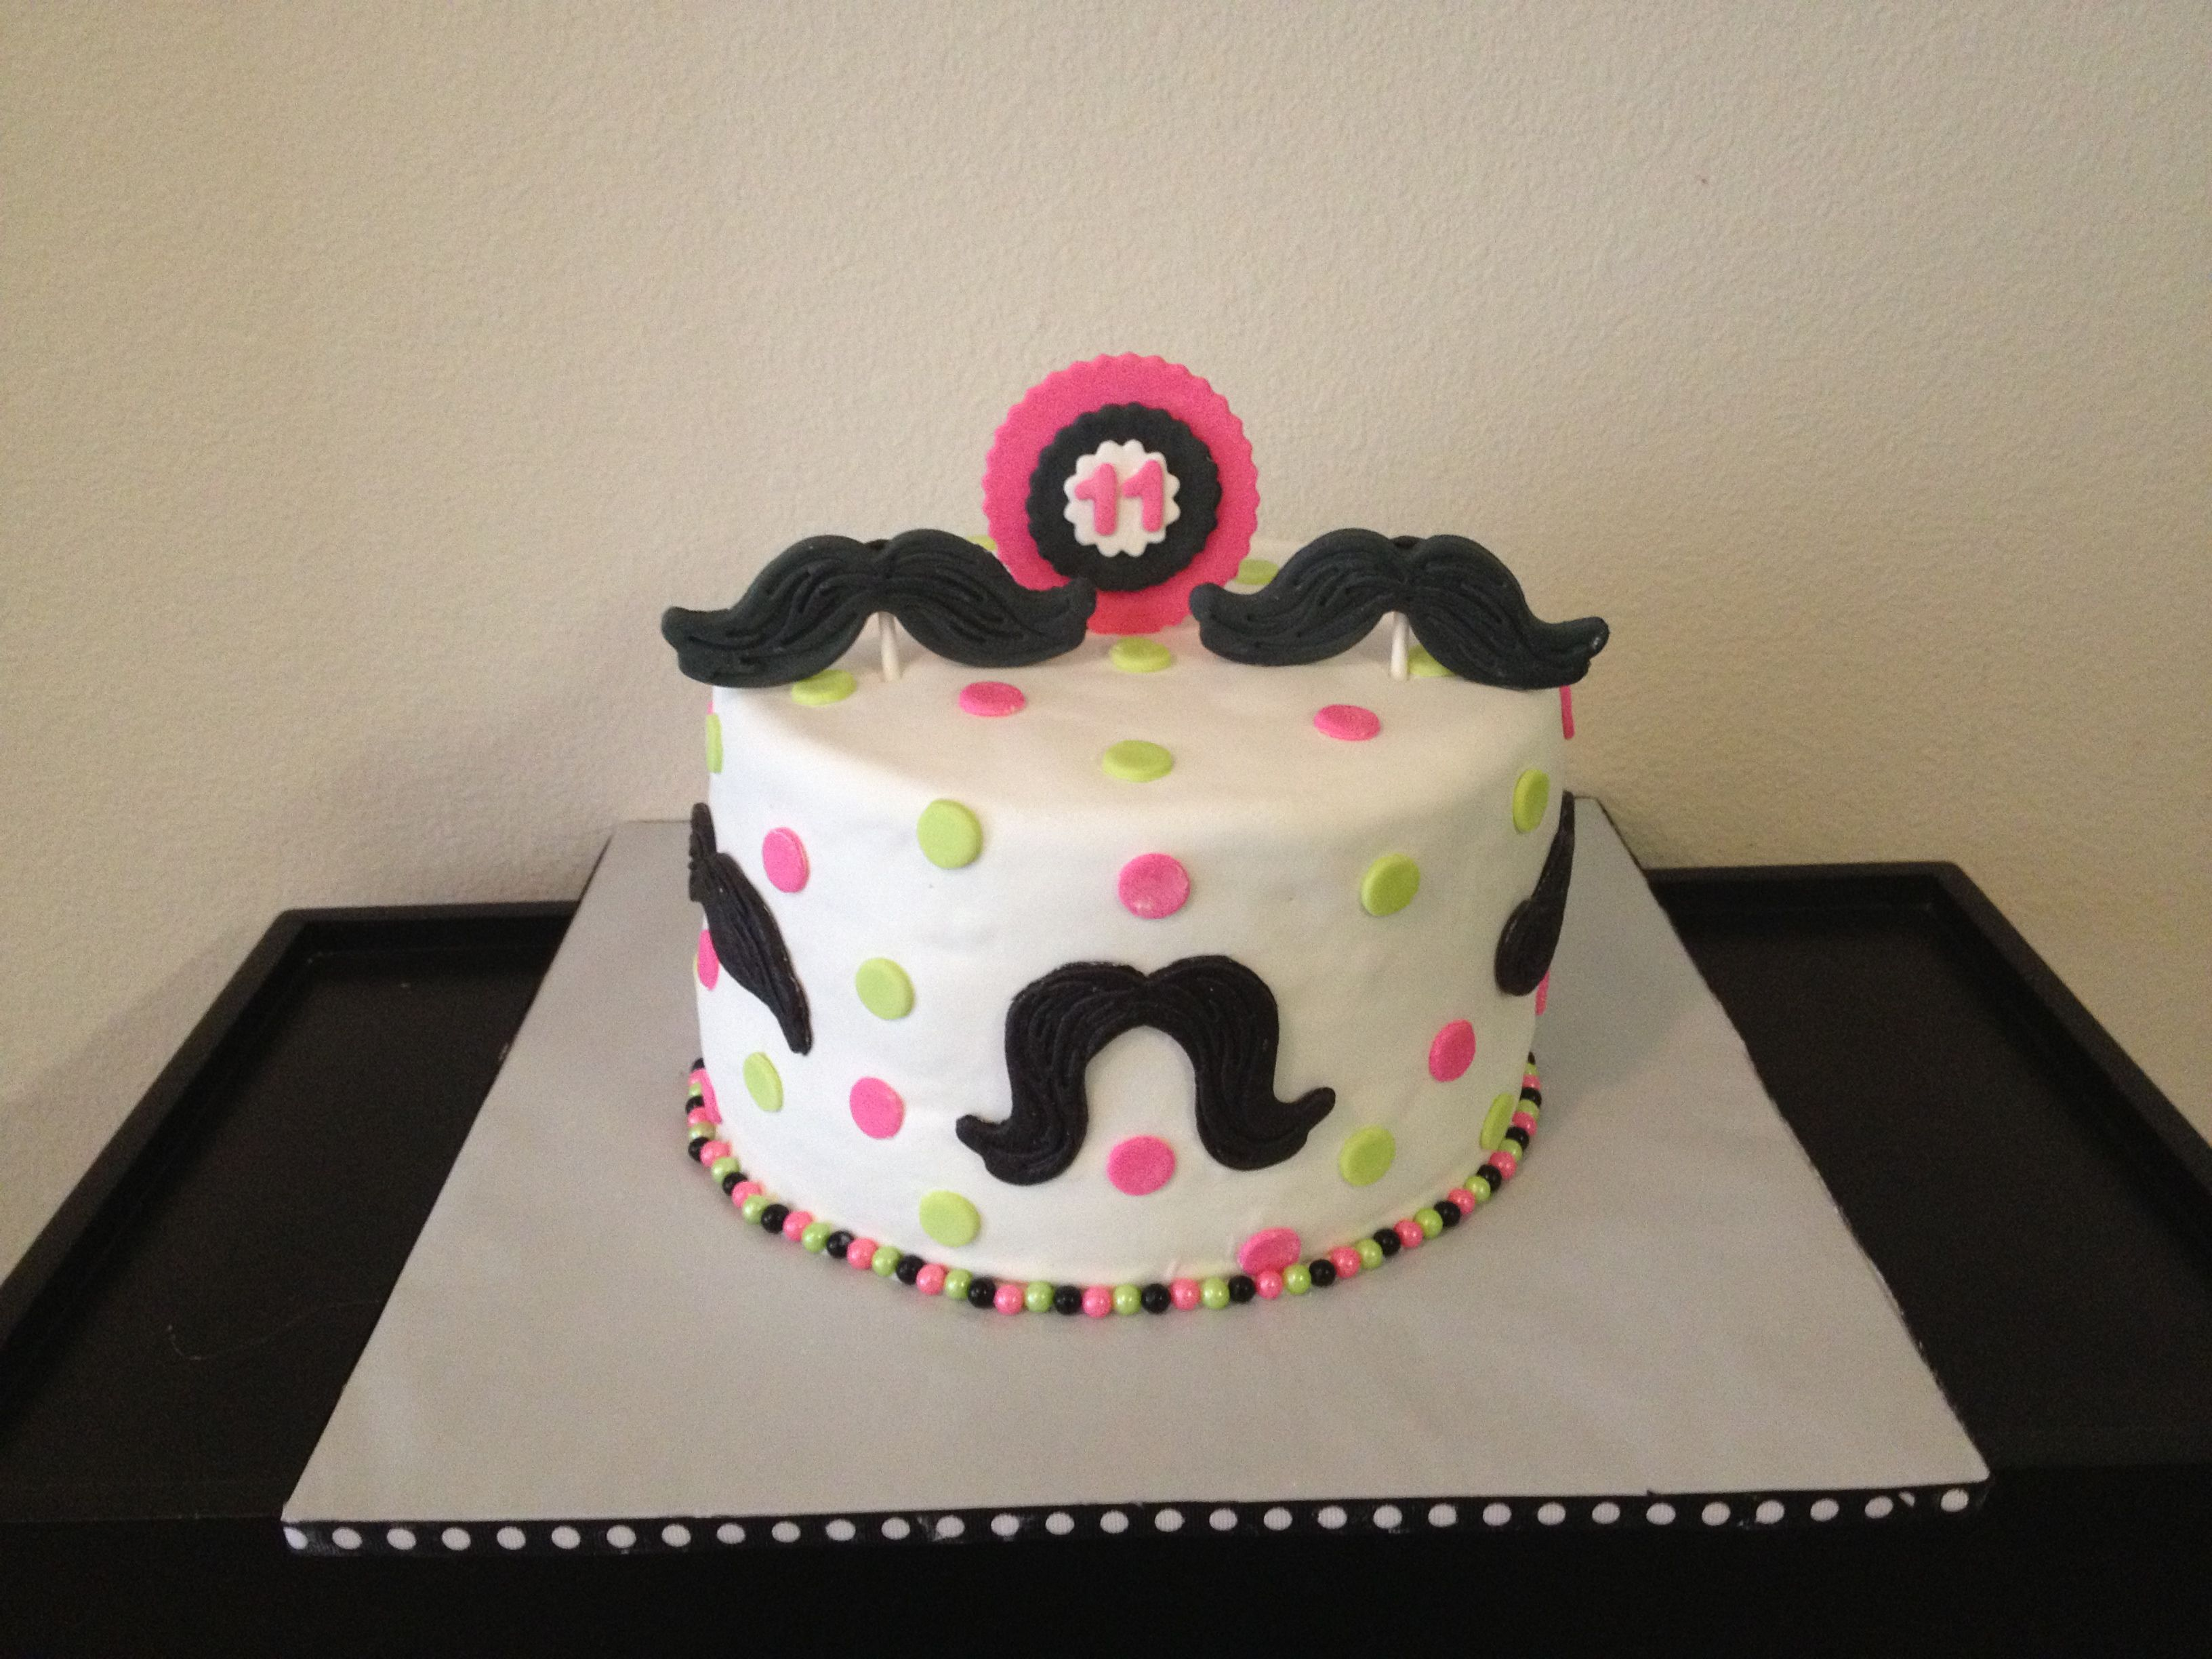 Mustache Birthday Cake For  Year Old Girl Cakes Cupcakes And - 11th birthday cake ideas